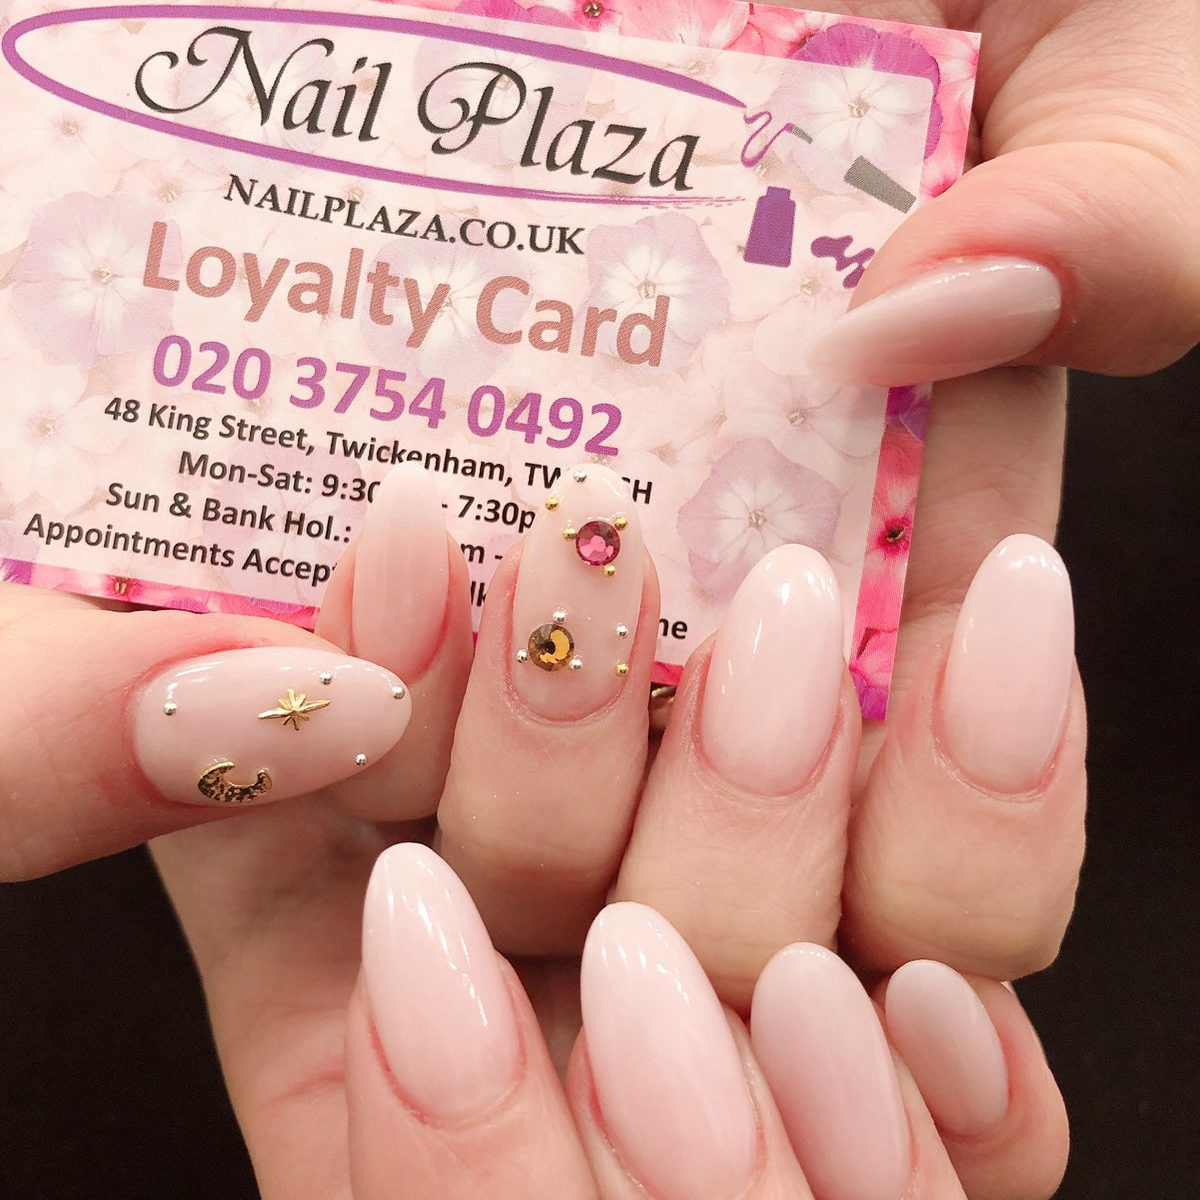 oval shaped nail extension in pale pink with 3D designs